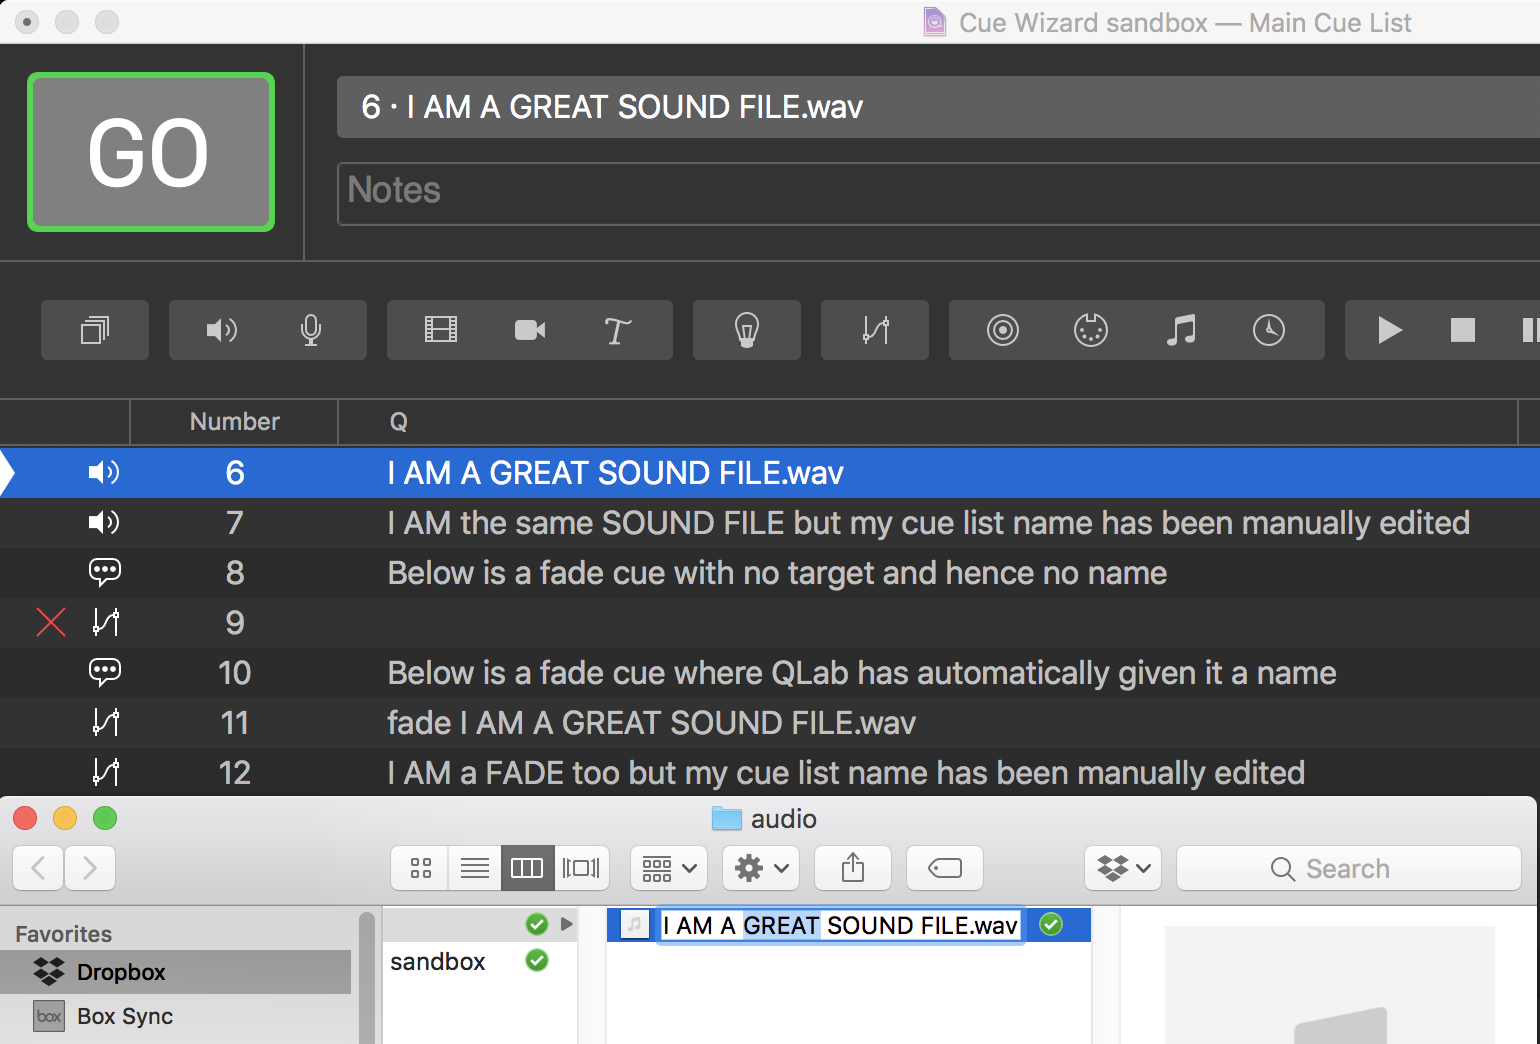 Changing the file name, QLab automatically renames cue 6 and 11. Cue 7 and 12 don't because we have manually edited them.